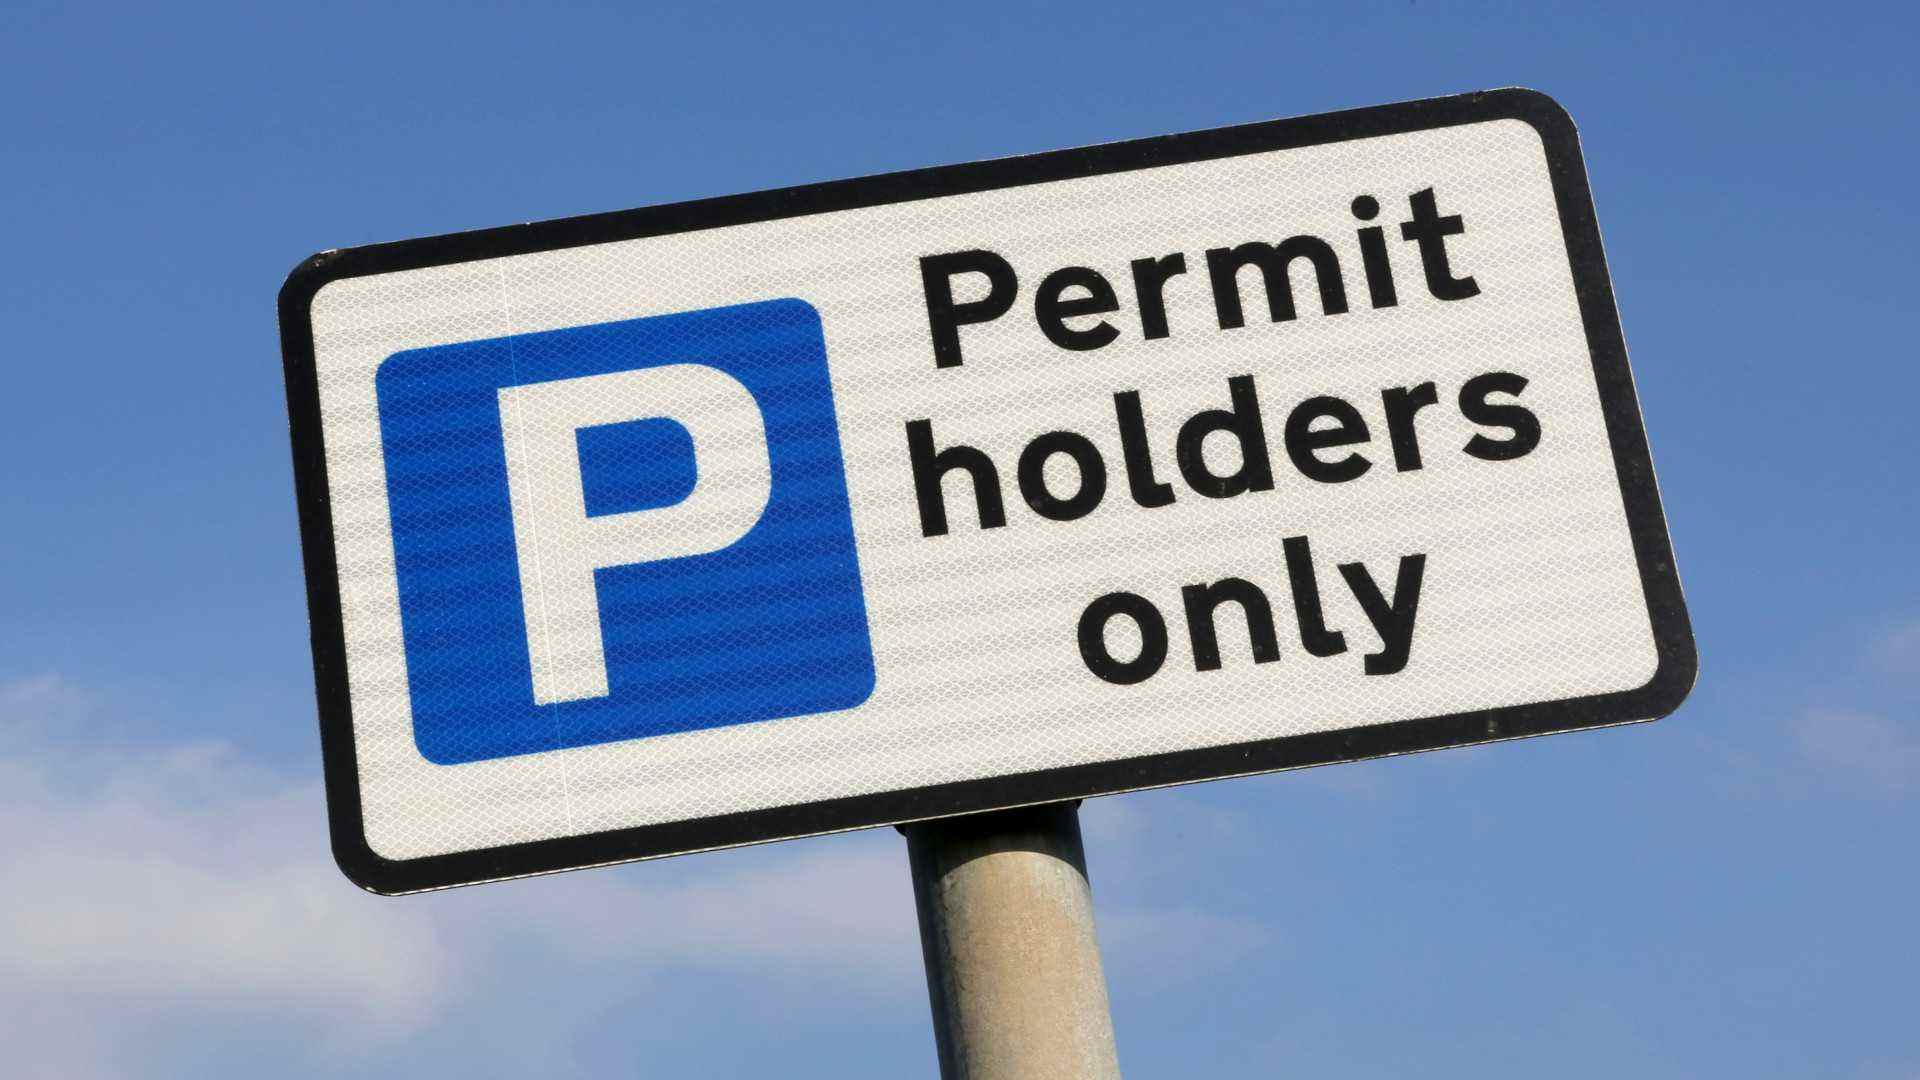 Parking permit holders only sign